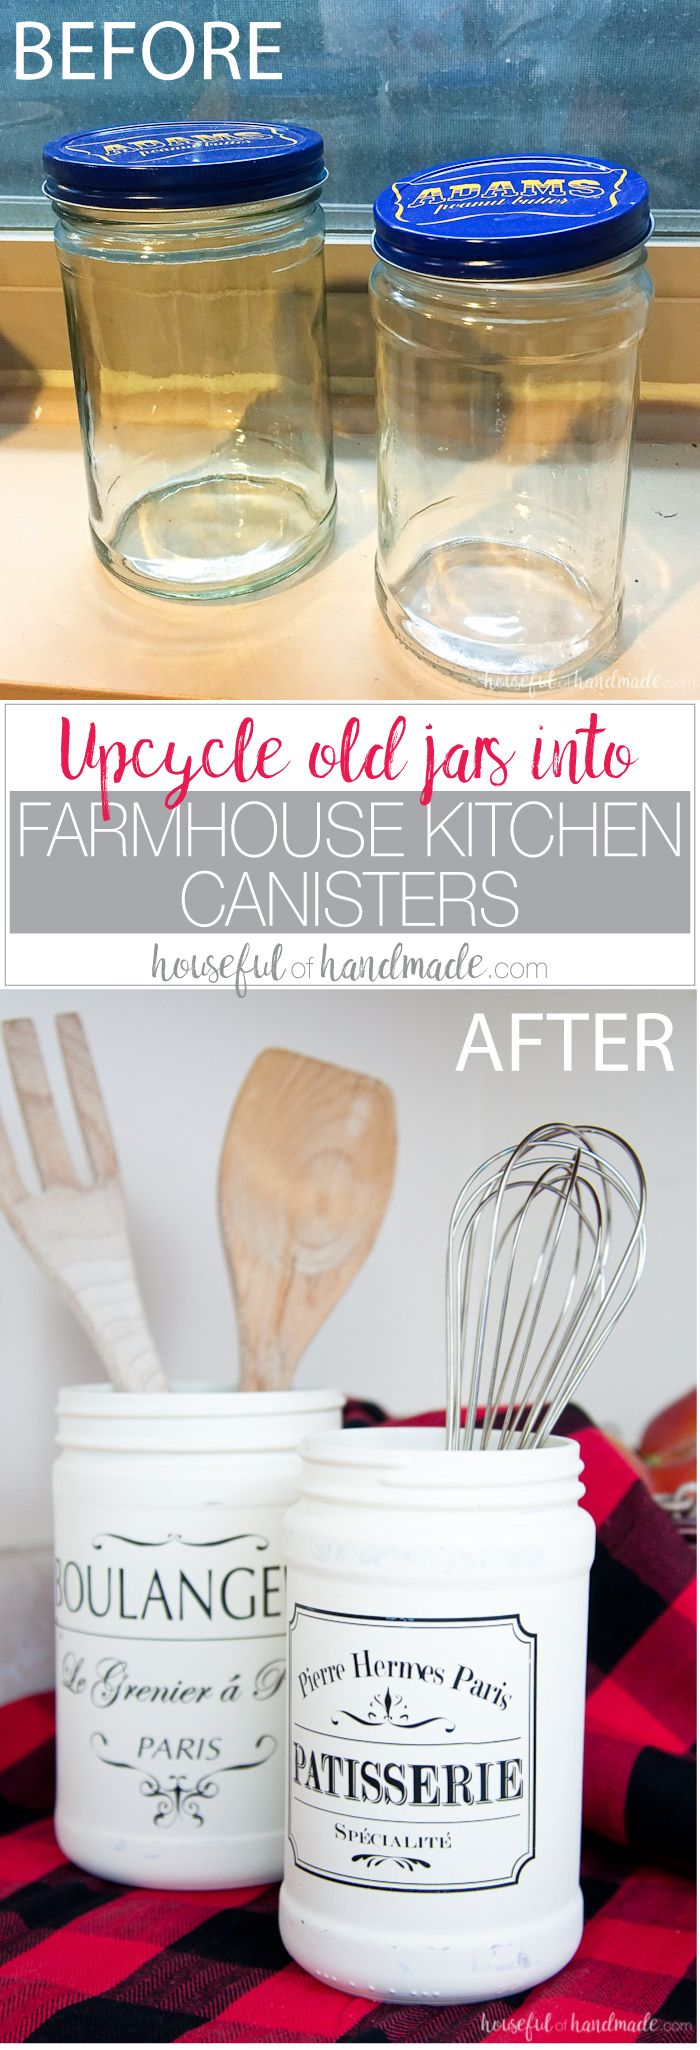 best 25 kitchen canisters ideas on pinterest canisters open farmhouse kitchen canister diy